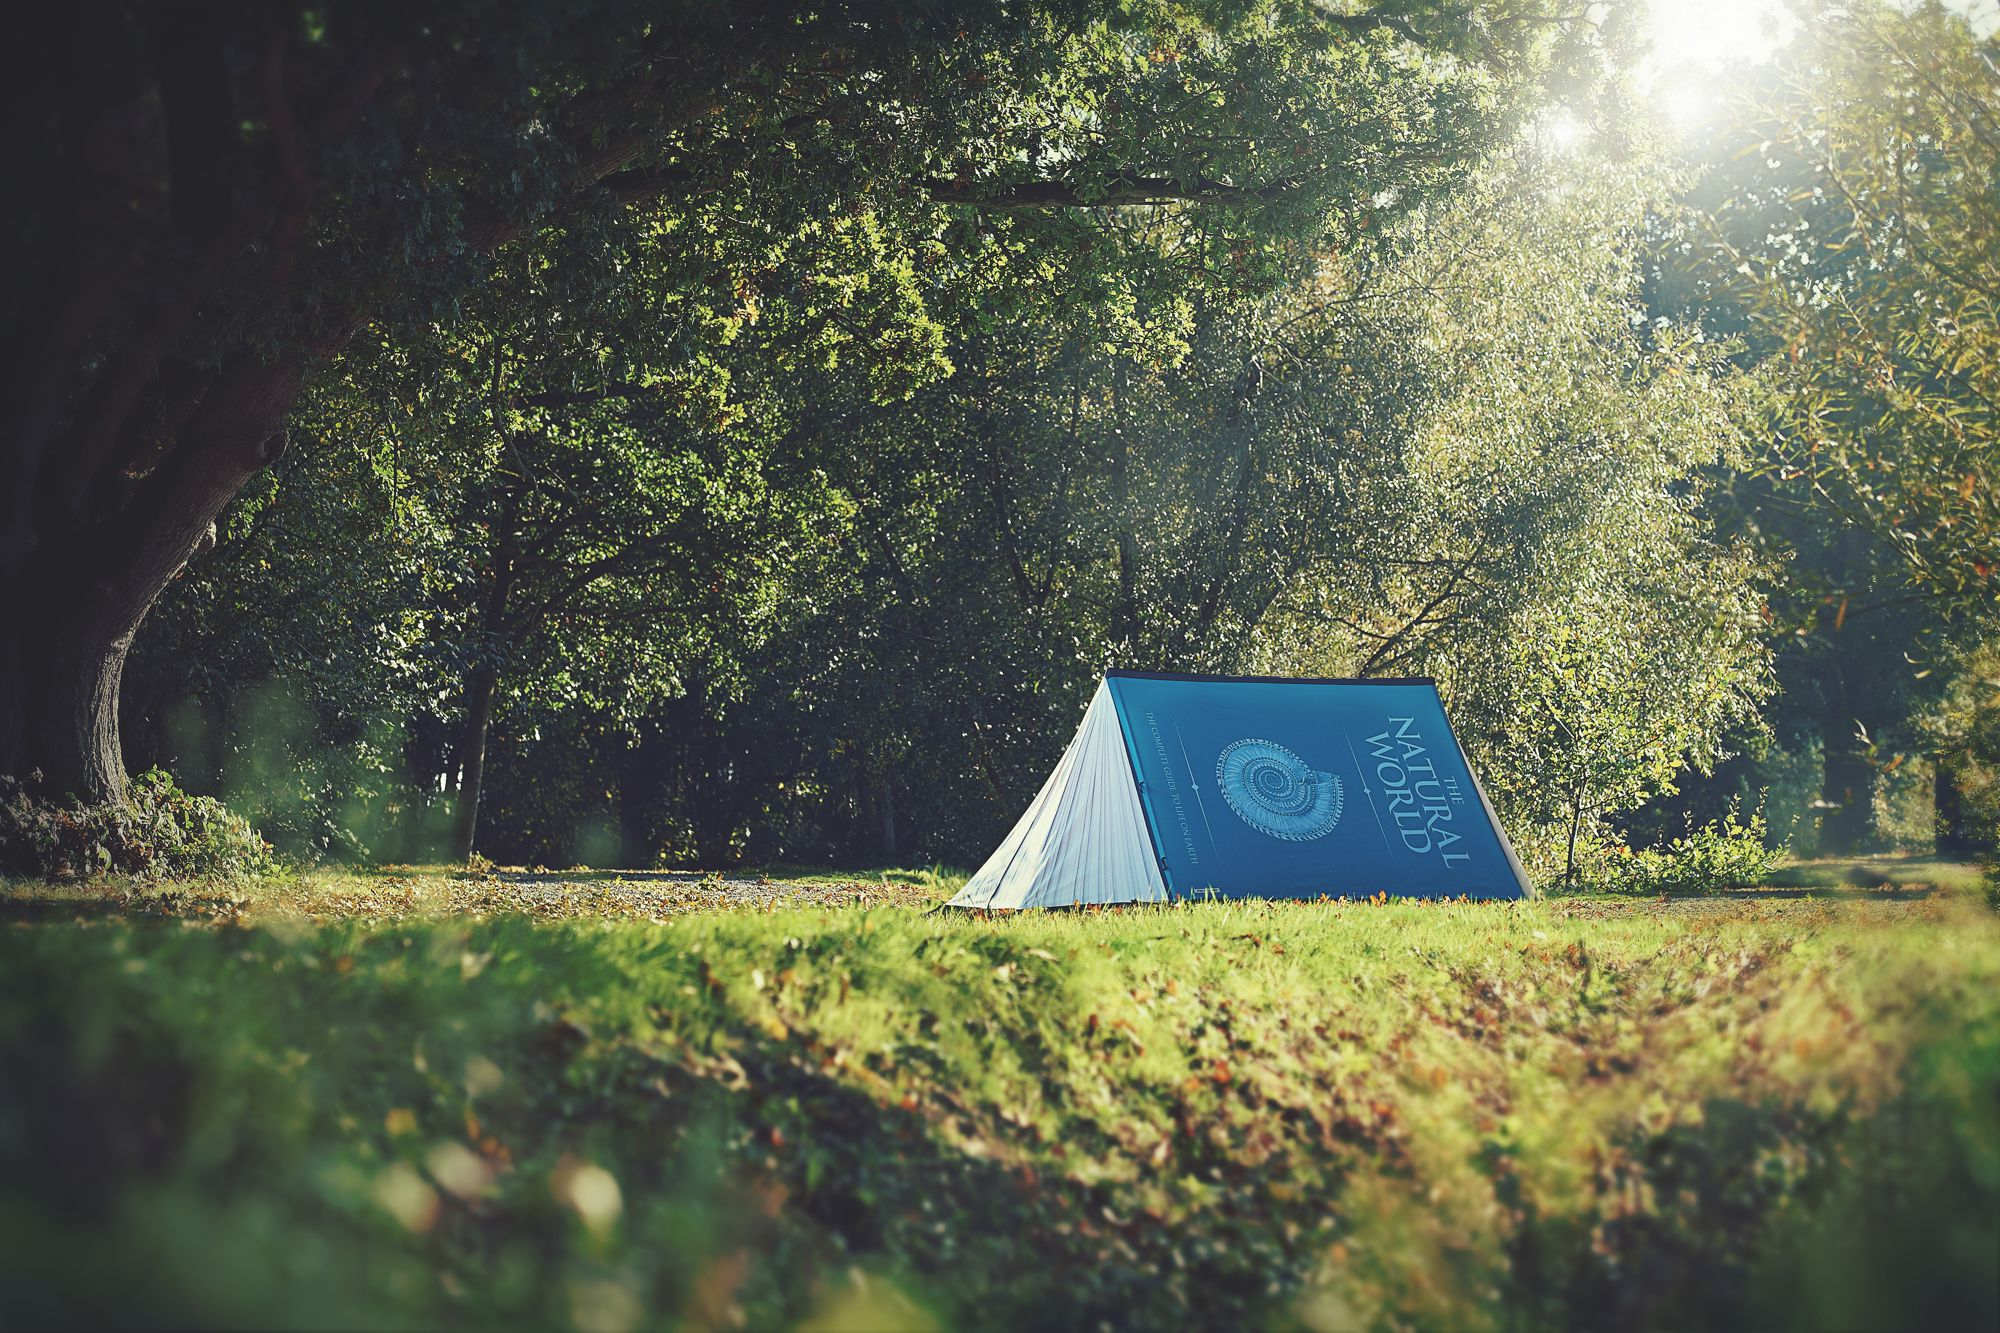 Subscribe to win the tent of your dreams from Field Candy worth up to £299!